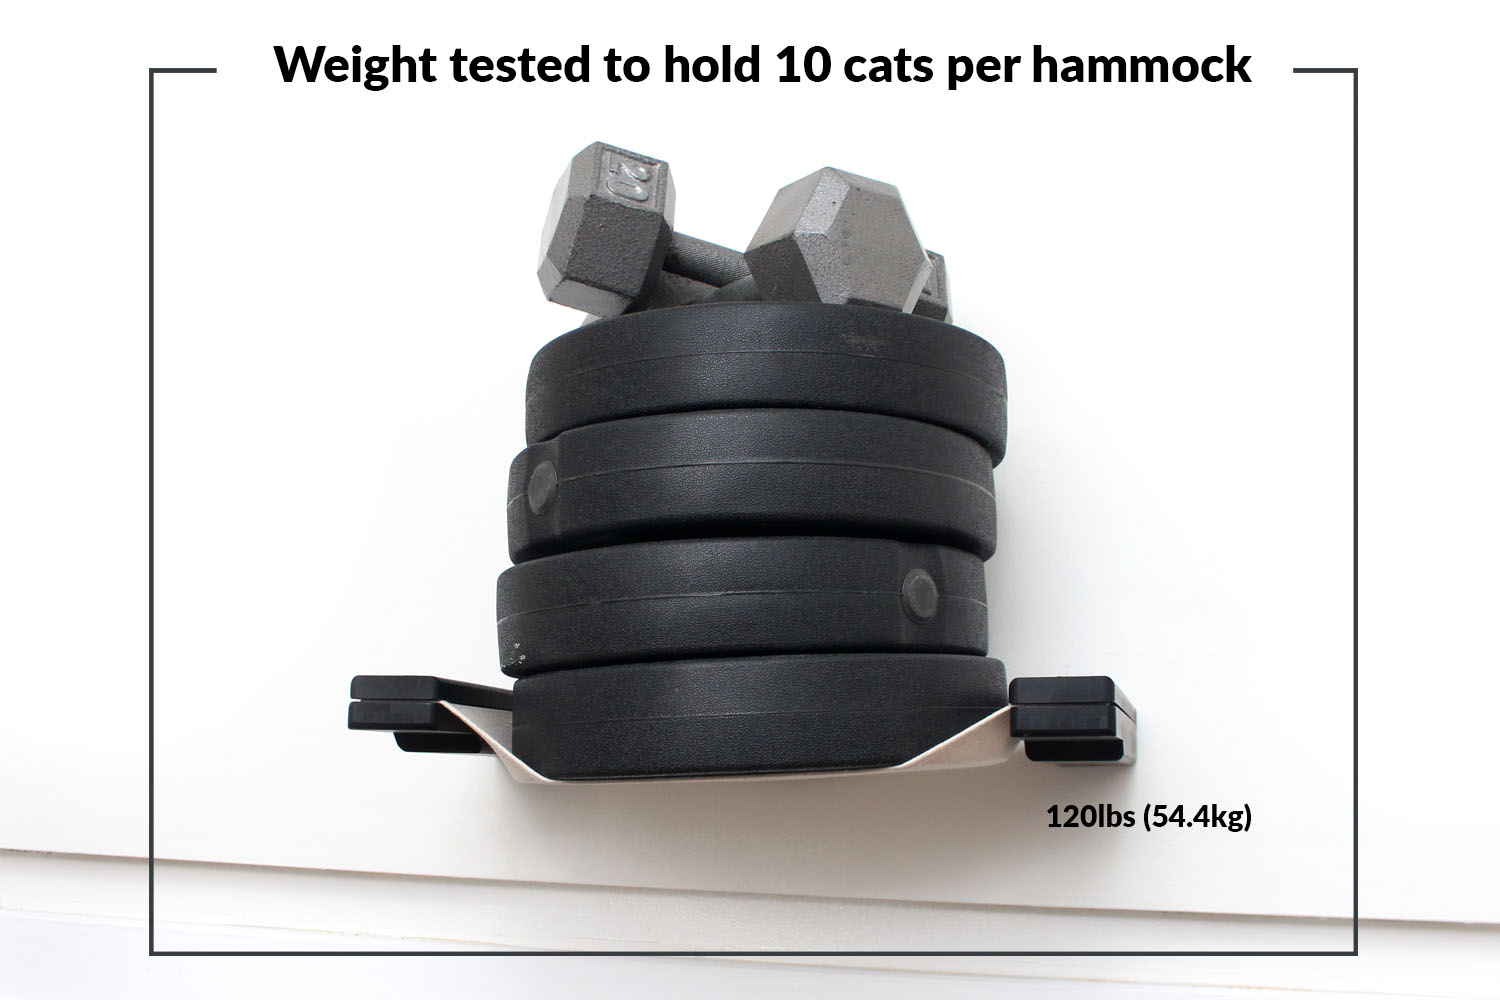 This photo displays a weight test on one of the Cat Lounges. This weight test shows the hammock holding 120lbs (54.4kg).